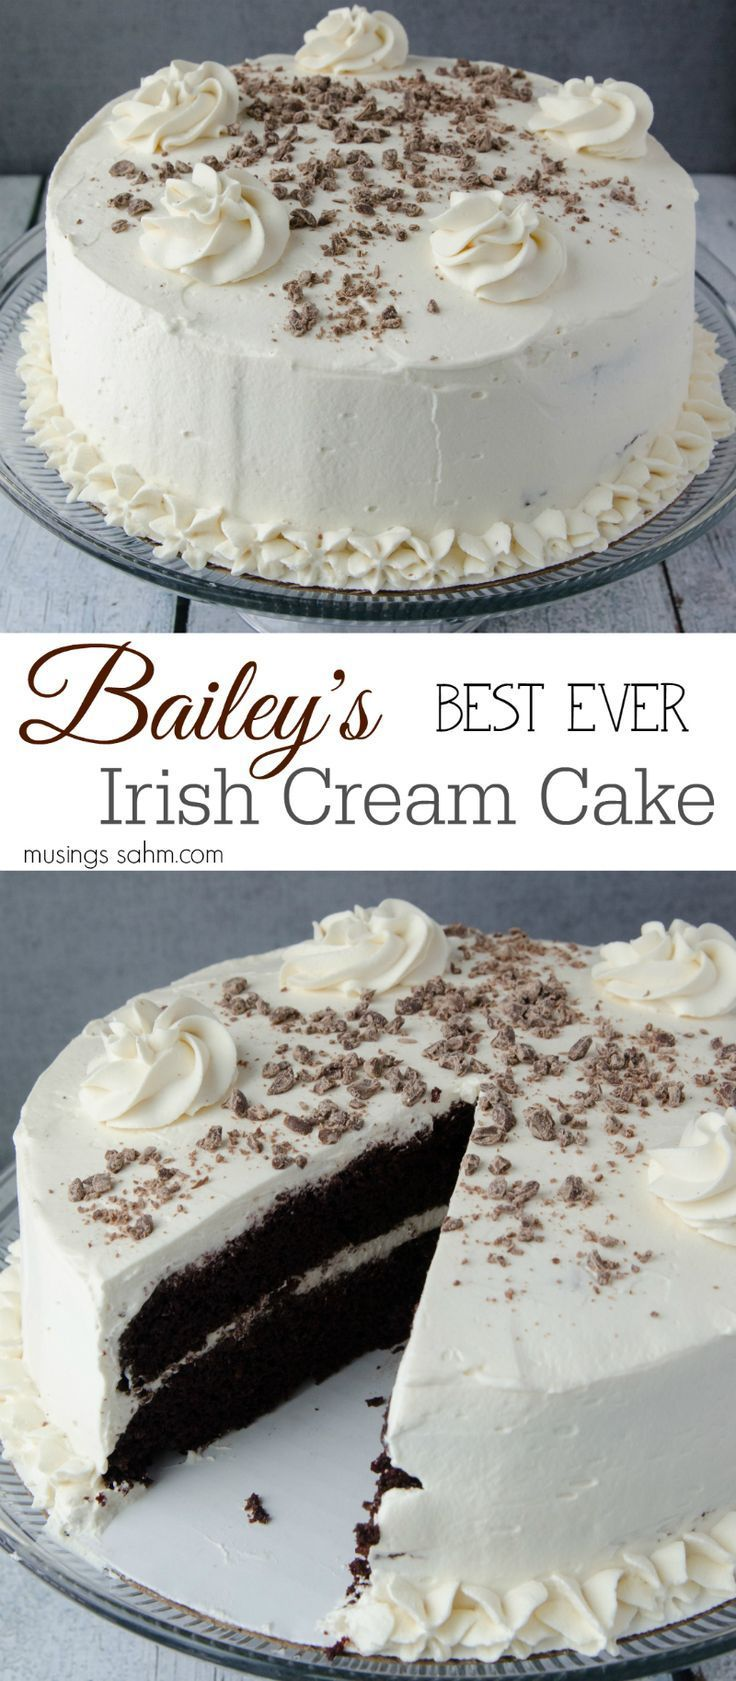 Bailey's Irish Cream Cake - The moist chocolate cake and flavorful real whipped cream frosting are so light, you'll have a hard time saying no to a second piece of this delicious chocolate cake! And of course, it includes real Bailey's Irish Cream, which